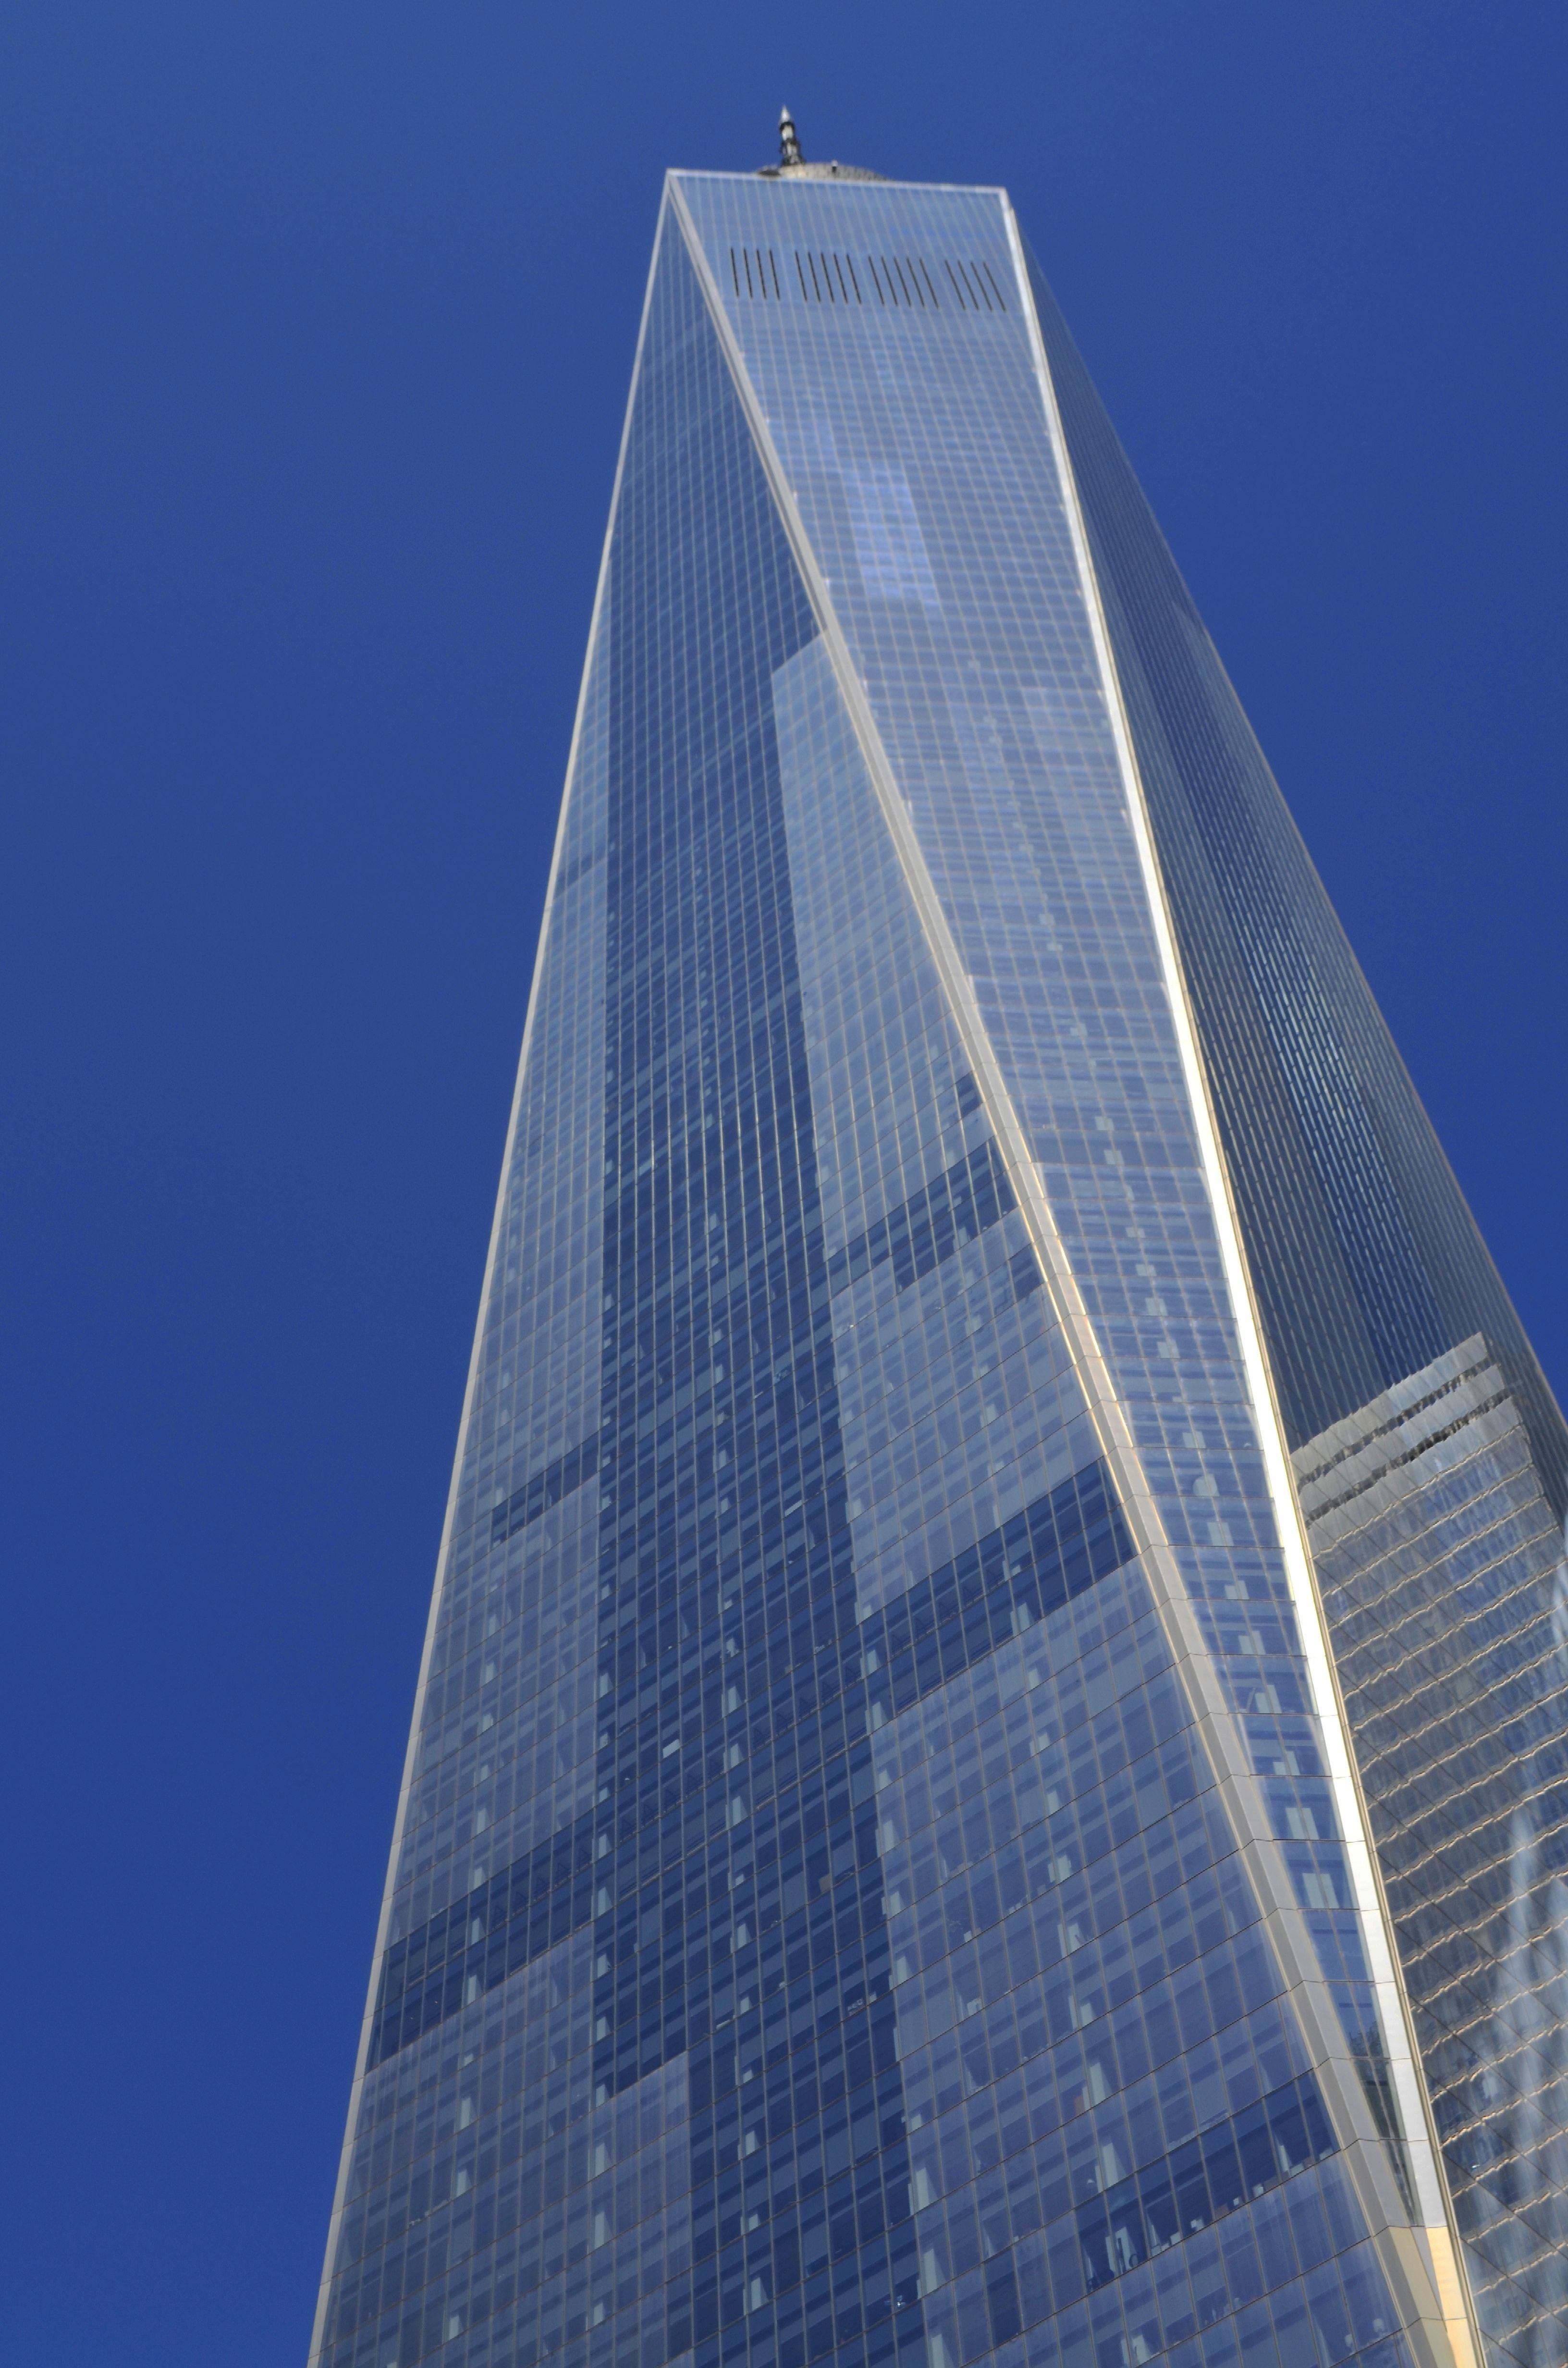 one world trade center, sehenswürdigkeiten top 10, fifth avenue, travelguide new york, travelblog, travel, lifestyleblog, blogger © ceyourgoals 2016